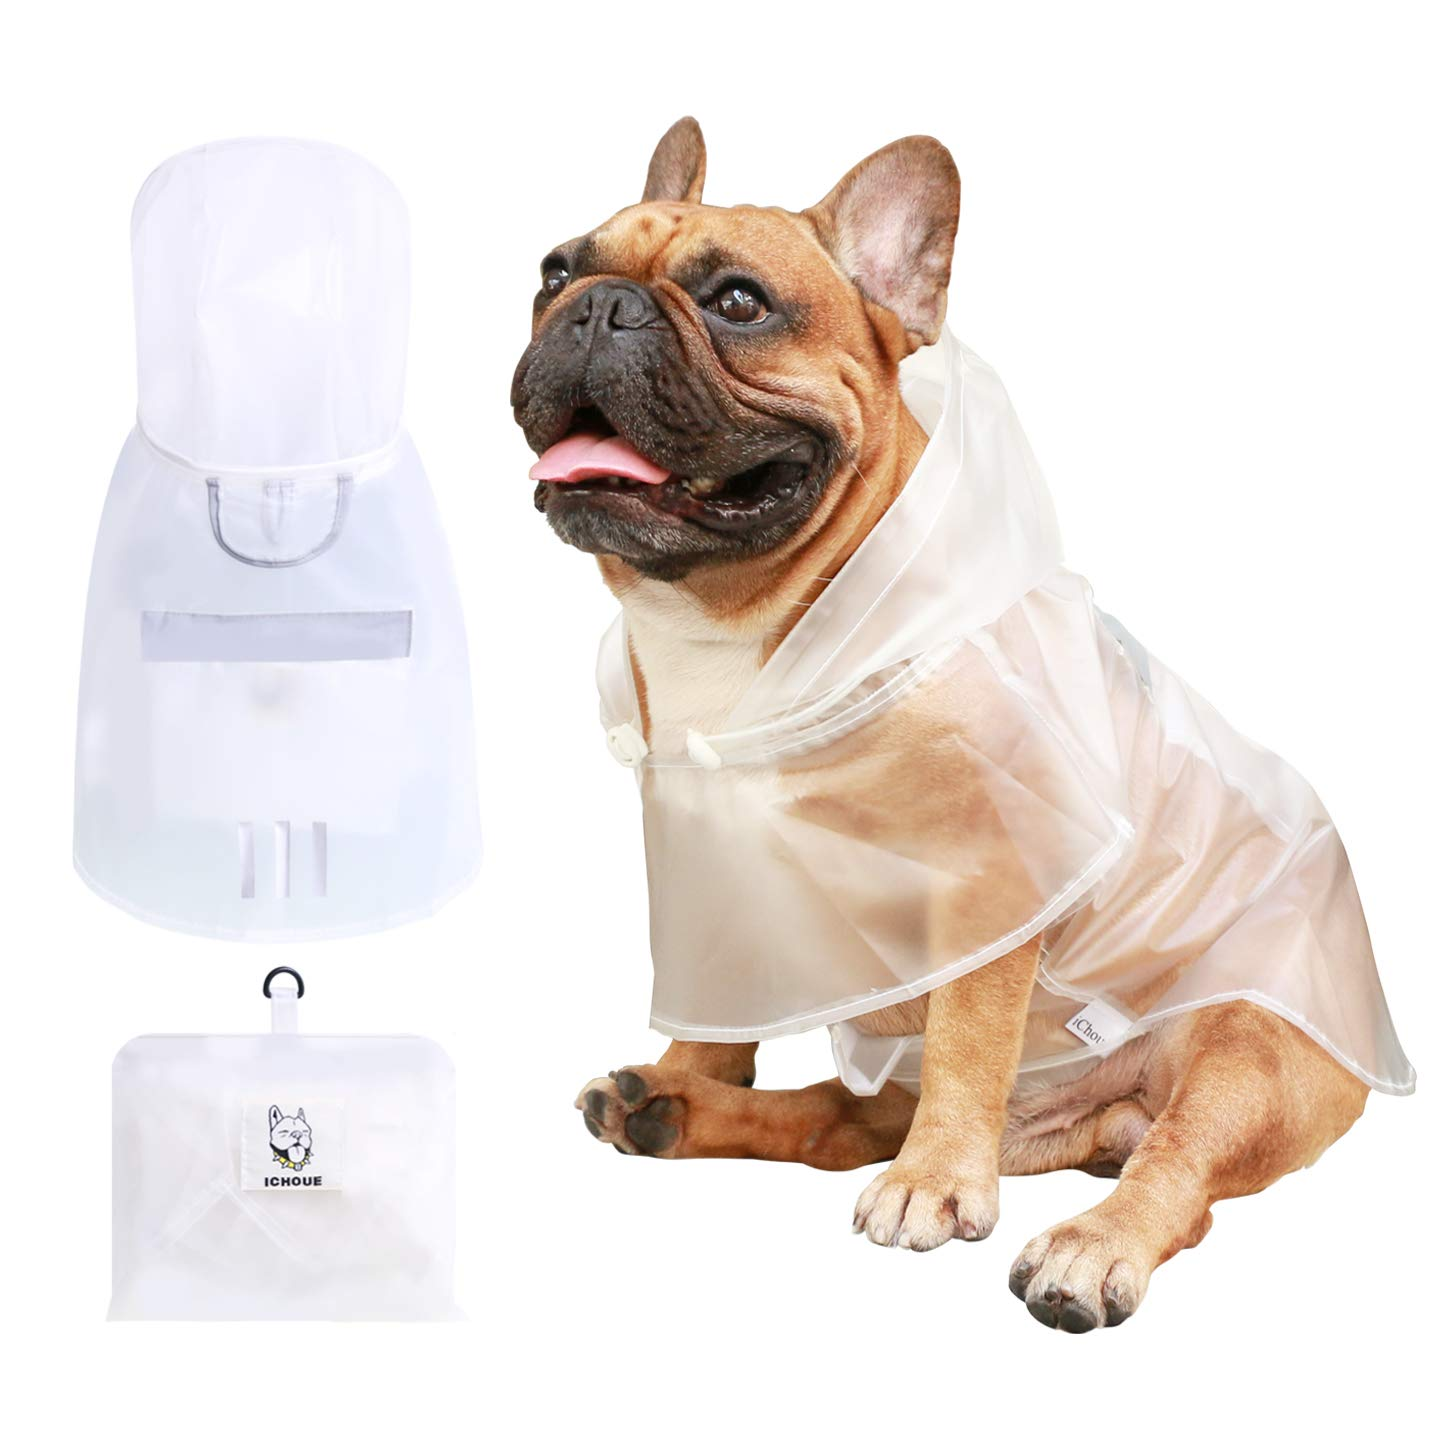 iChoue Dog Raincoat Packable Waterproof Adjustable with Reflective Straps Lightweight Rain Jacket Poncho for Medium French Bulldog Pug (Clear, M) by iChoue